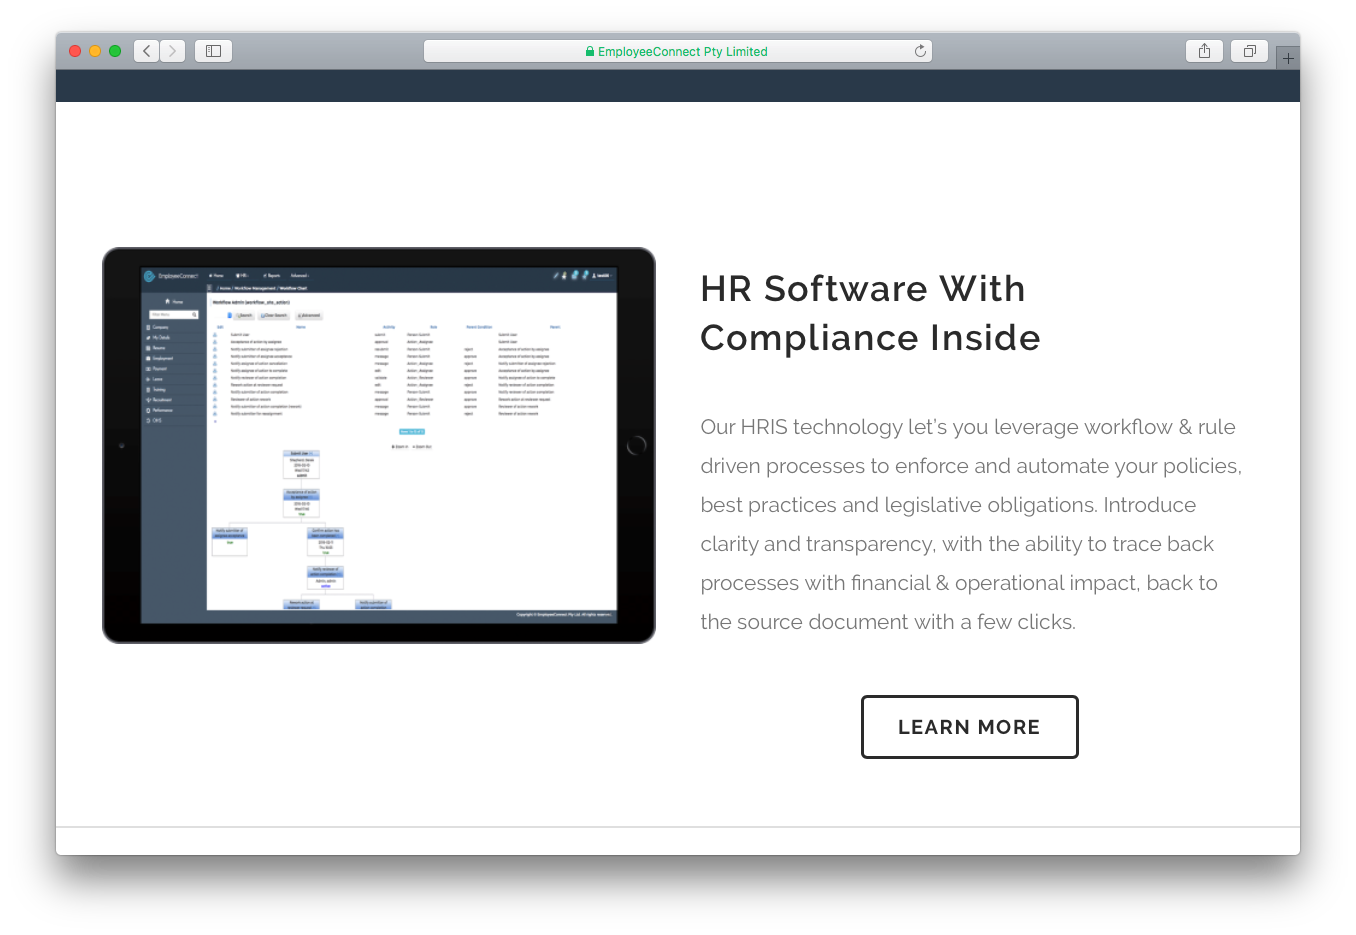 EmployeeConnect HR software Human Resources HRIS technology workflow